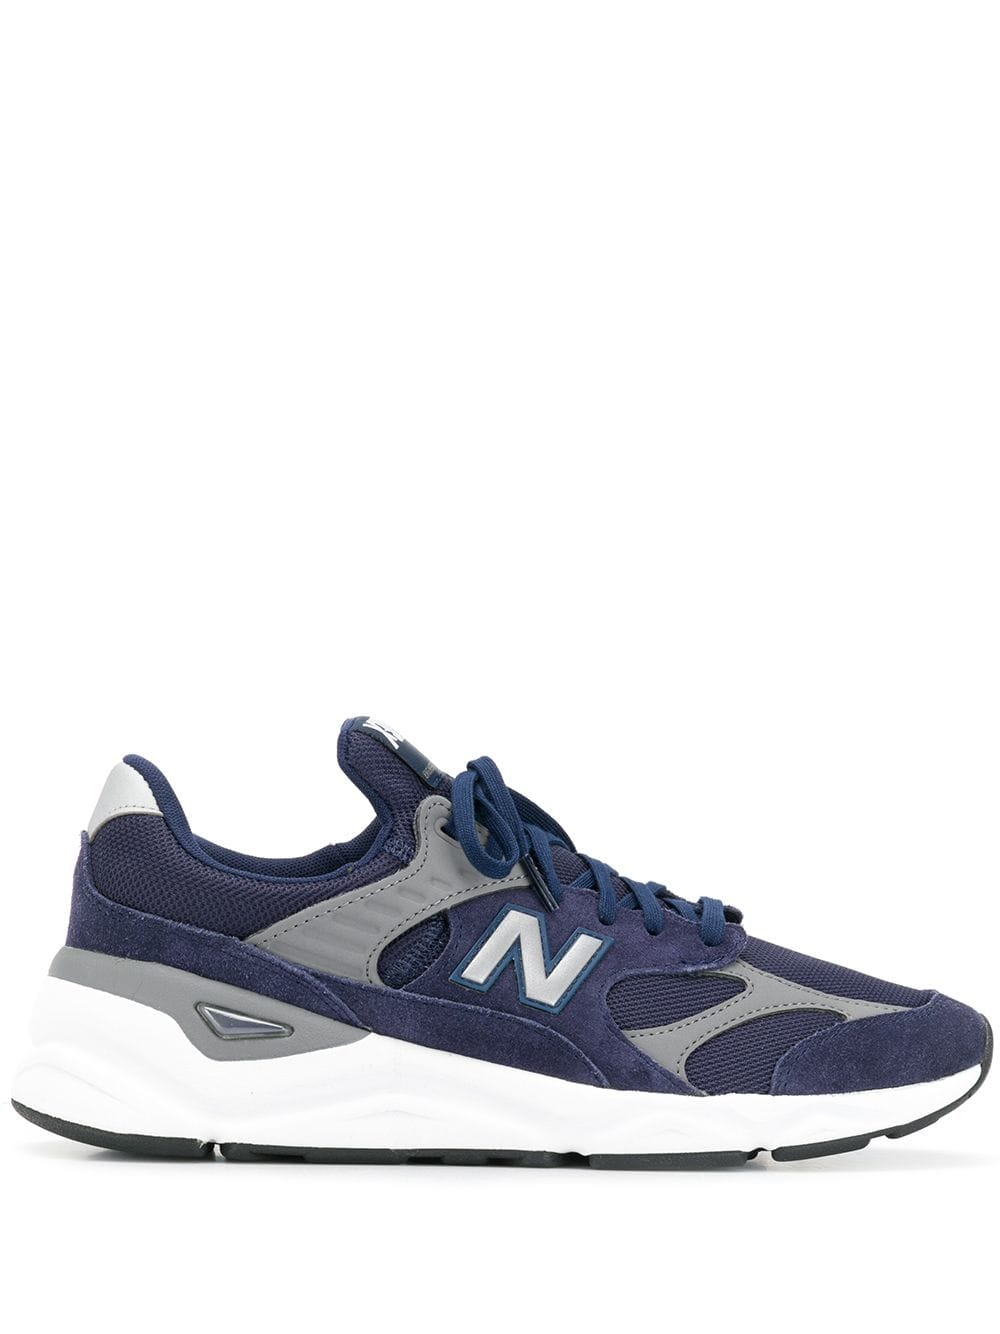 X90 Sneakers In Blue (With images) Comfort shoes women